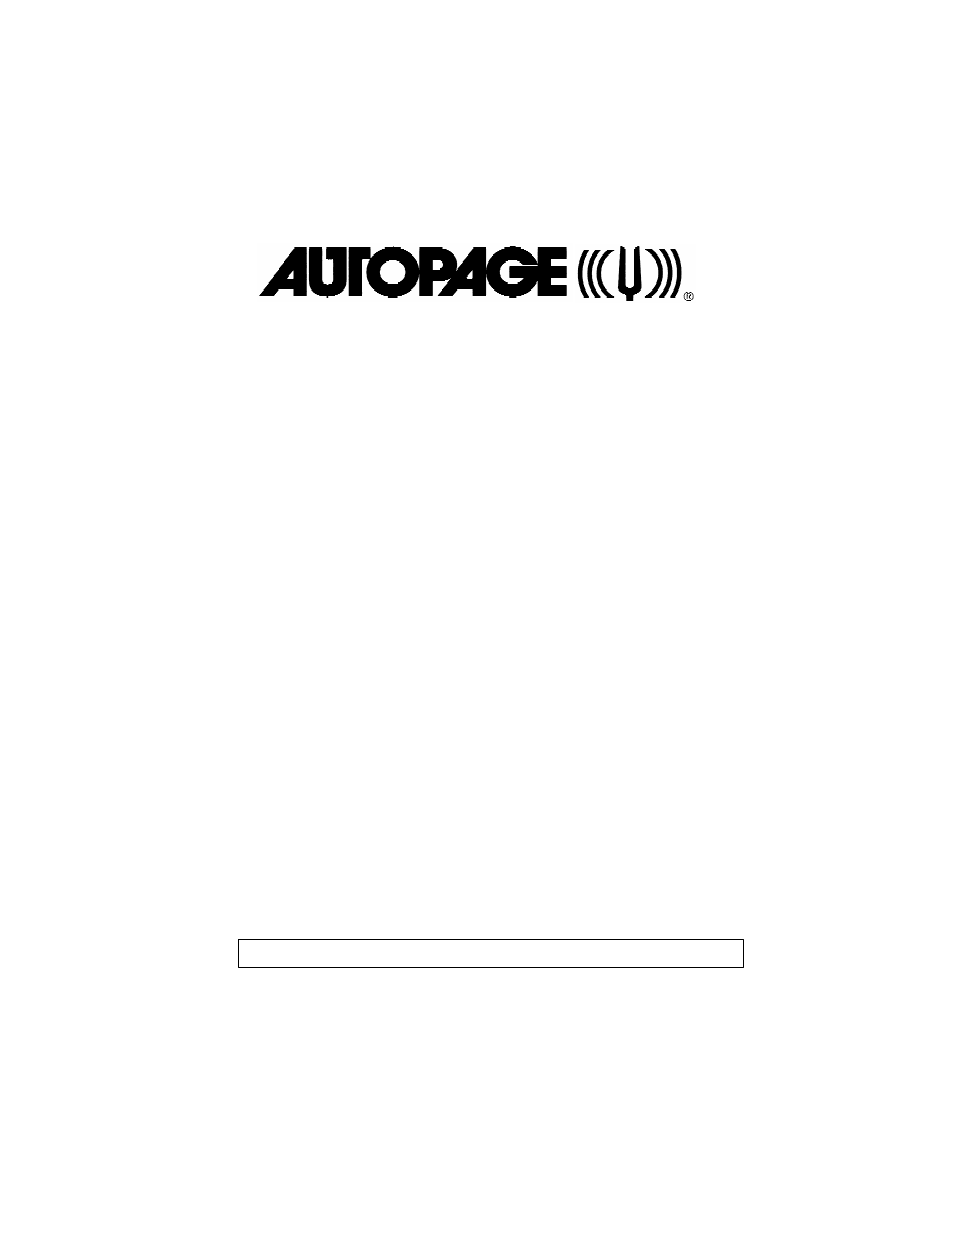 auto page rf 310 page1?resize\\\\\\\\\\\\\\\\\\\\\\\\\\\\\\\=665%2C861 surprising commando alarms car wiring diagrams gallery wiring  at aneh.co